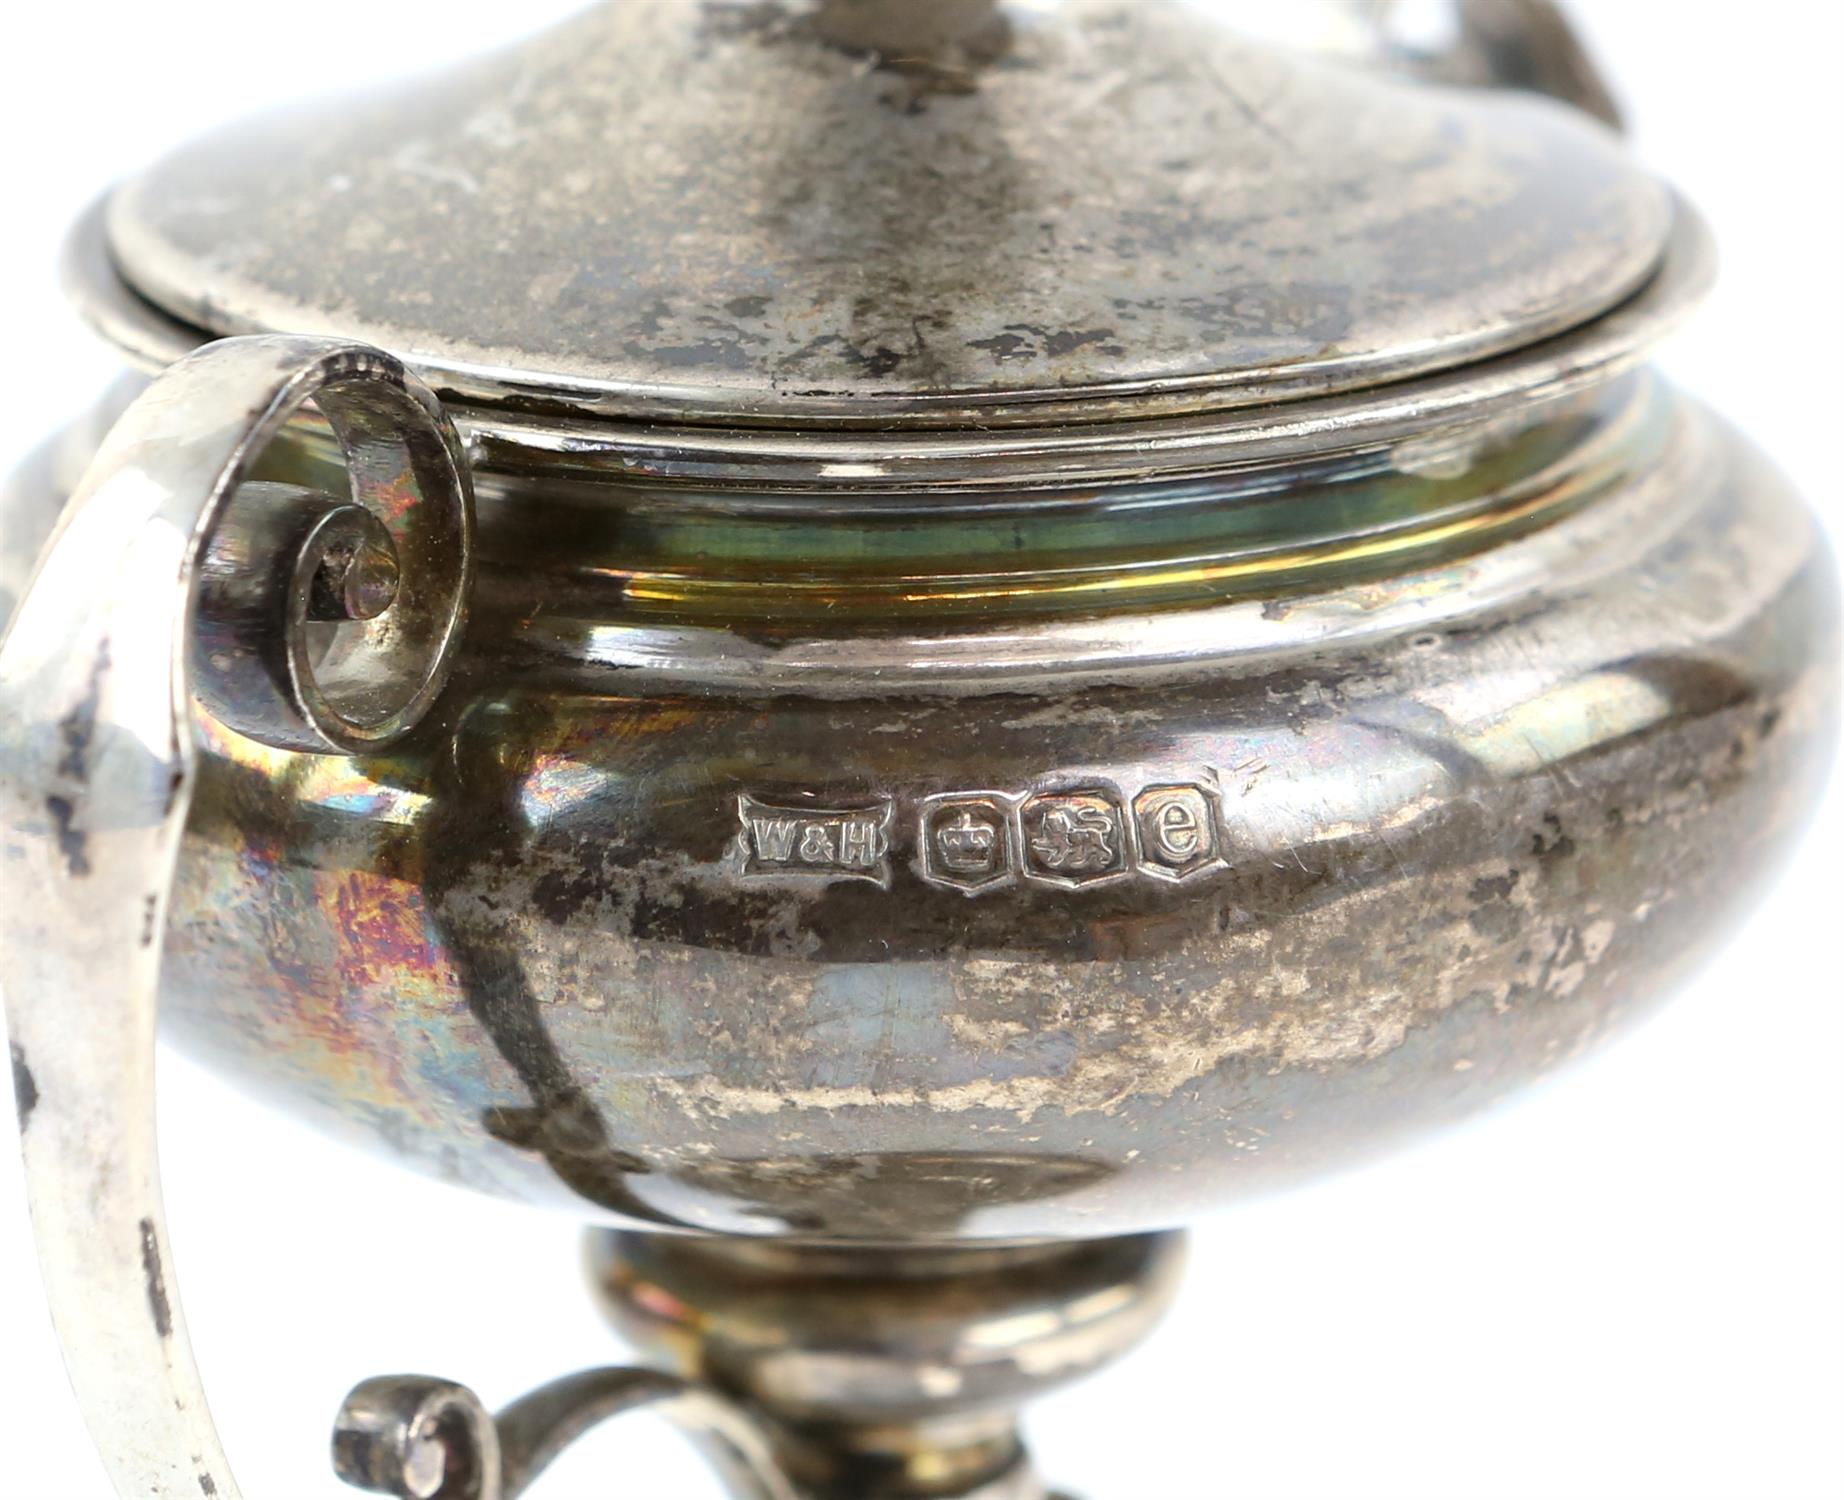 Victorian fern engraved silver mug, a silver sauce boat, a silver small trophy cup 403 grms 13 ozs - Image 5 of 10